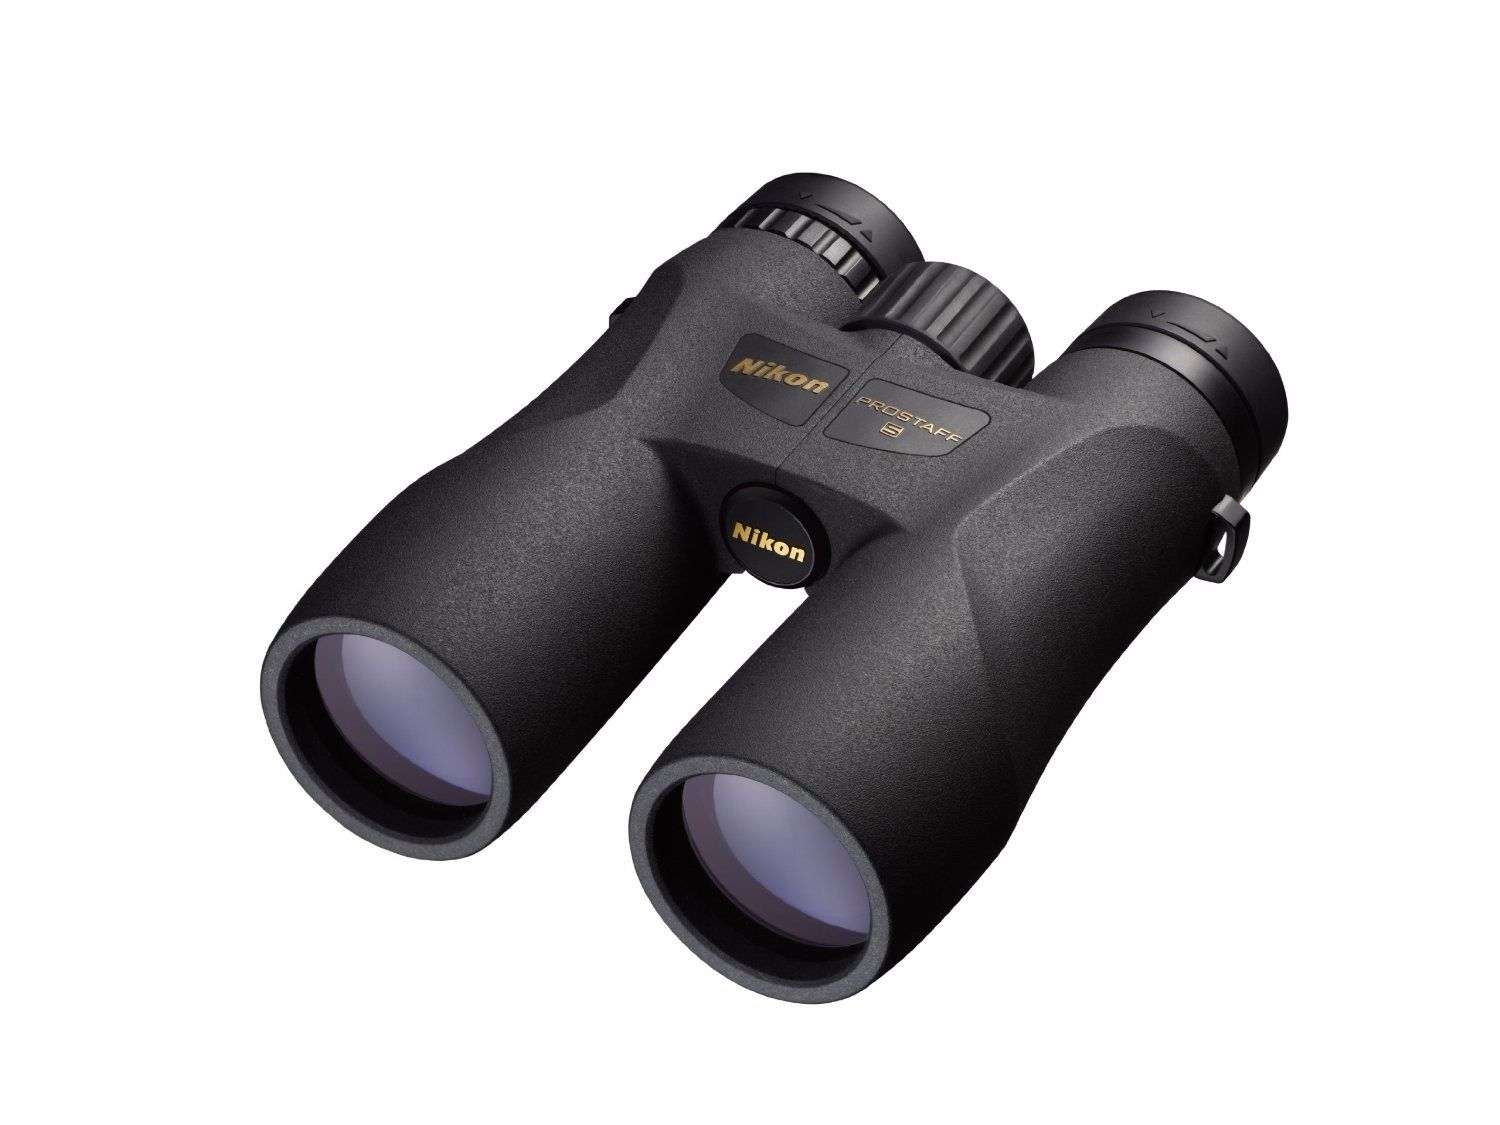 Nikon Binoculars PROSTAFF 5 10x42 Roof Prism Waterproof Fog-free from Japan NEW_1